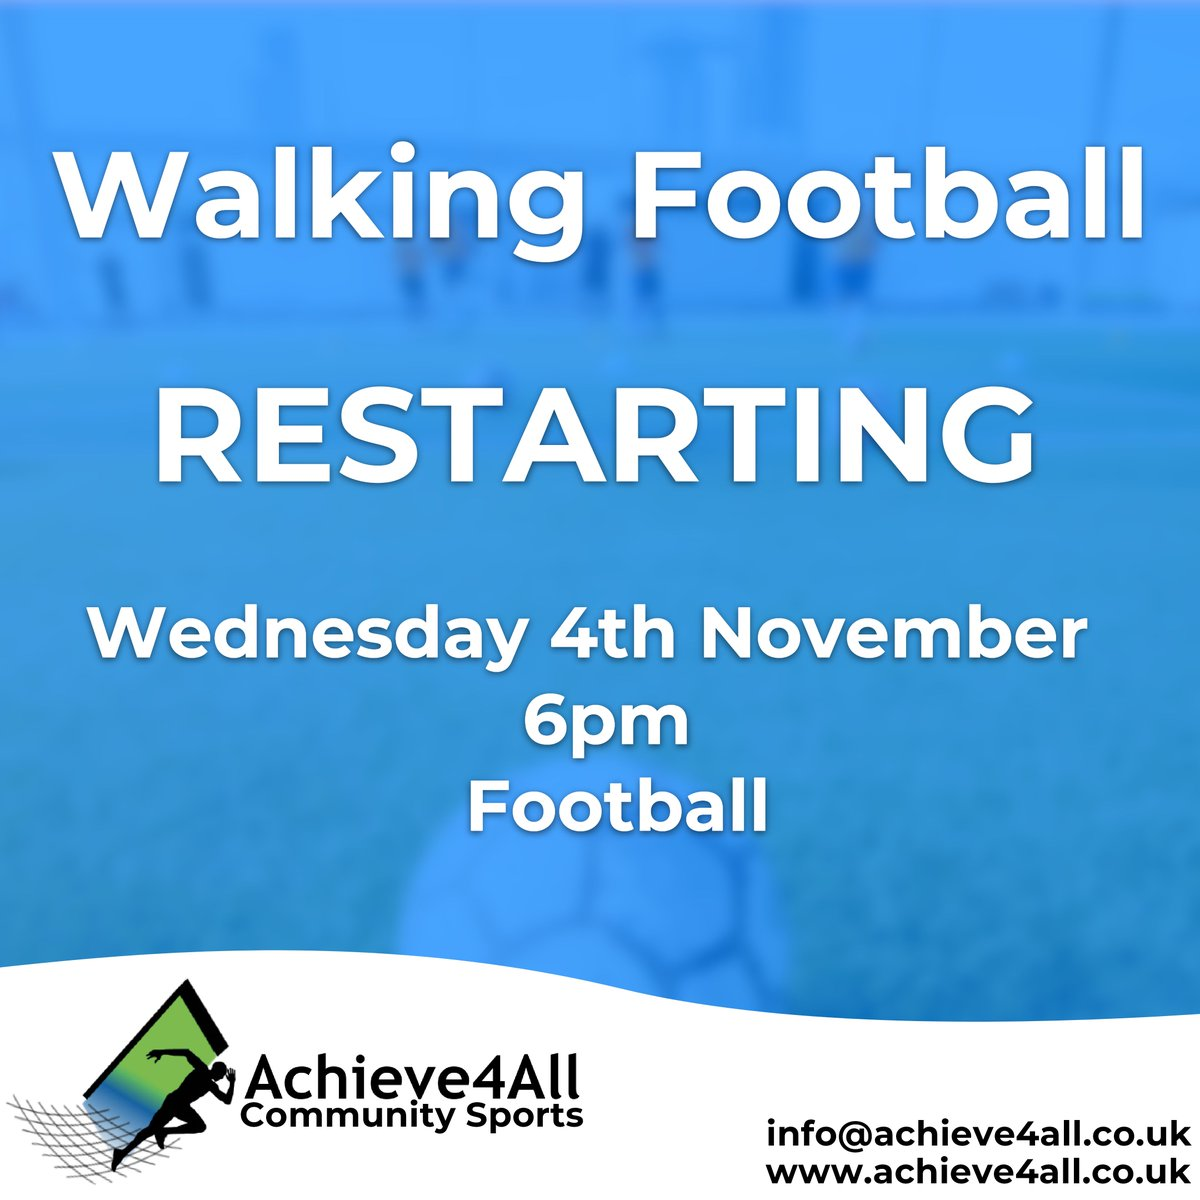 ✳️Walking Football - Tiverton - Last few spaces✳️  The only rules we have is that you can on walk!✔️  🔹 Book on the FREE session at https://t.co/gK3rGG3hfo  if you need more details contact 07833 230819  #walkingfootball #tiverton #devon #mentalwellness #mentalhealth #fun #sport https://t.co/pDXI8oYras